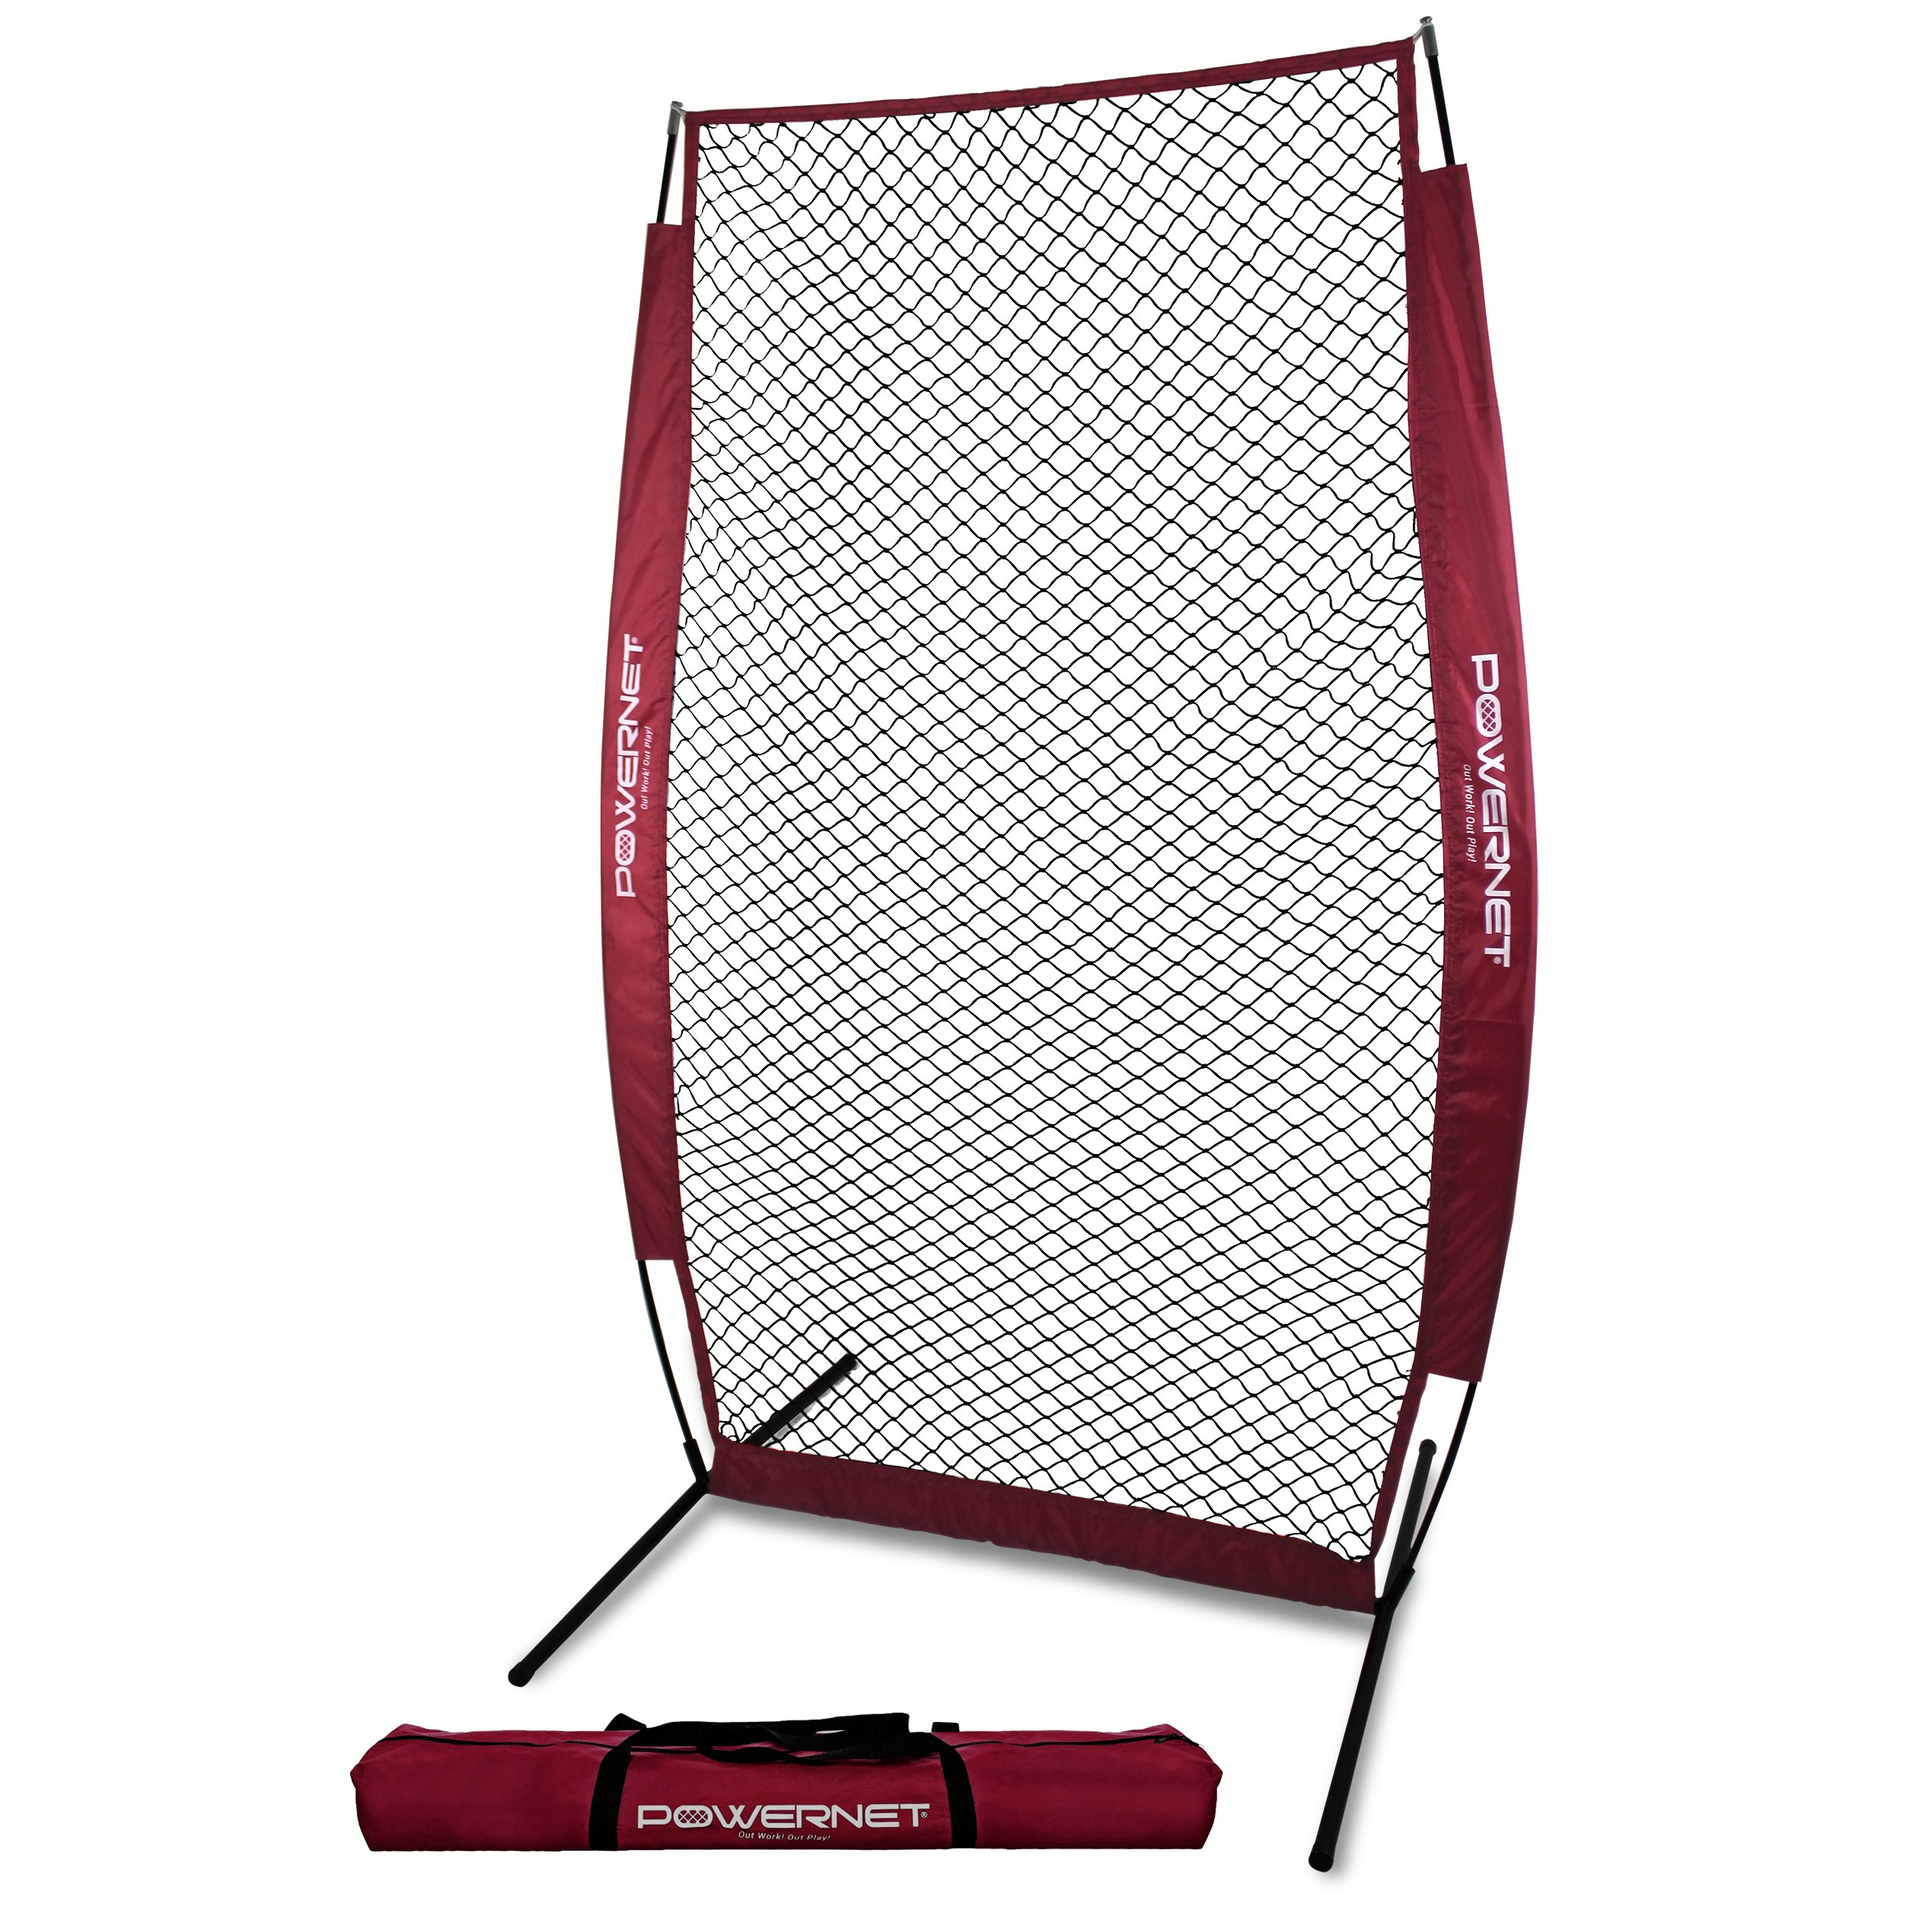 PowerNet I-Screen with Frame and Carry Bag (Maroon) | Portable Baseball Pitcher Protection at Batting Practice | Instant Player and Coach Protector from Line Drives Grounders | Heavy Duty Netting